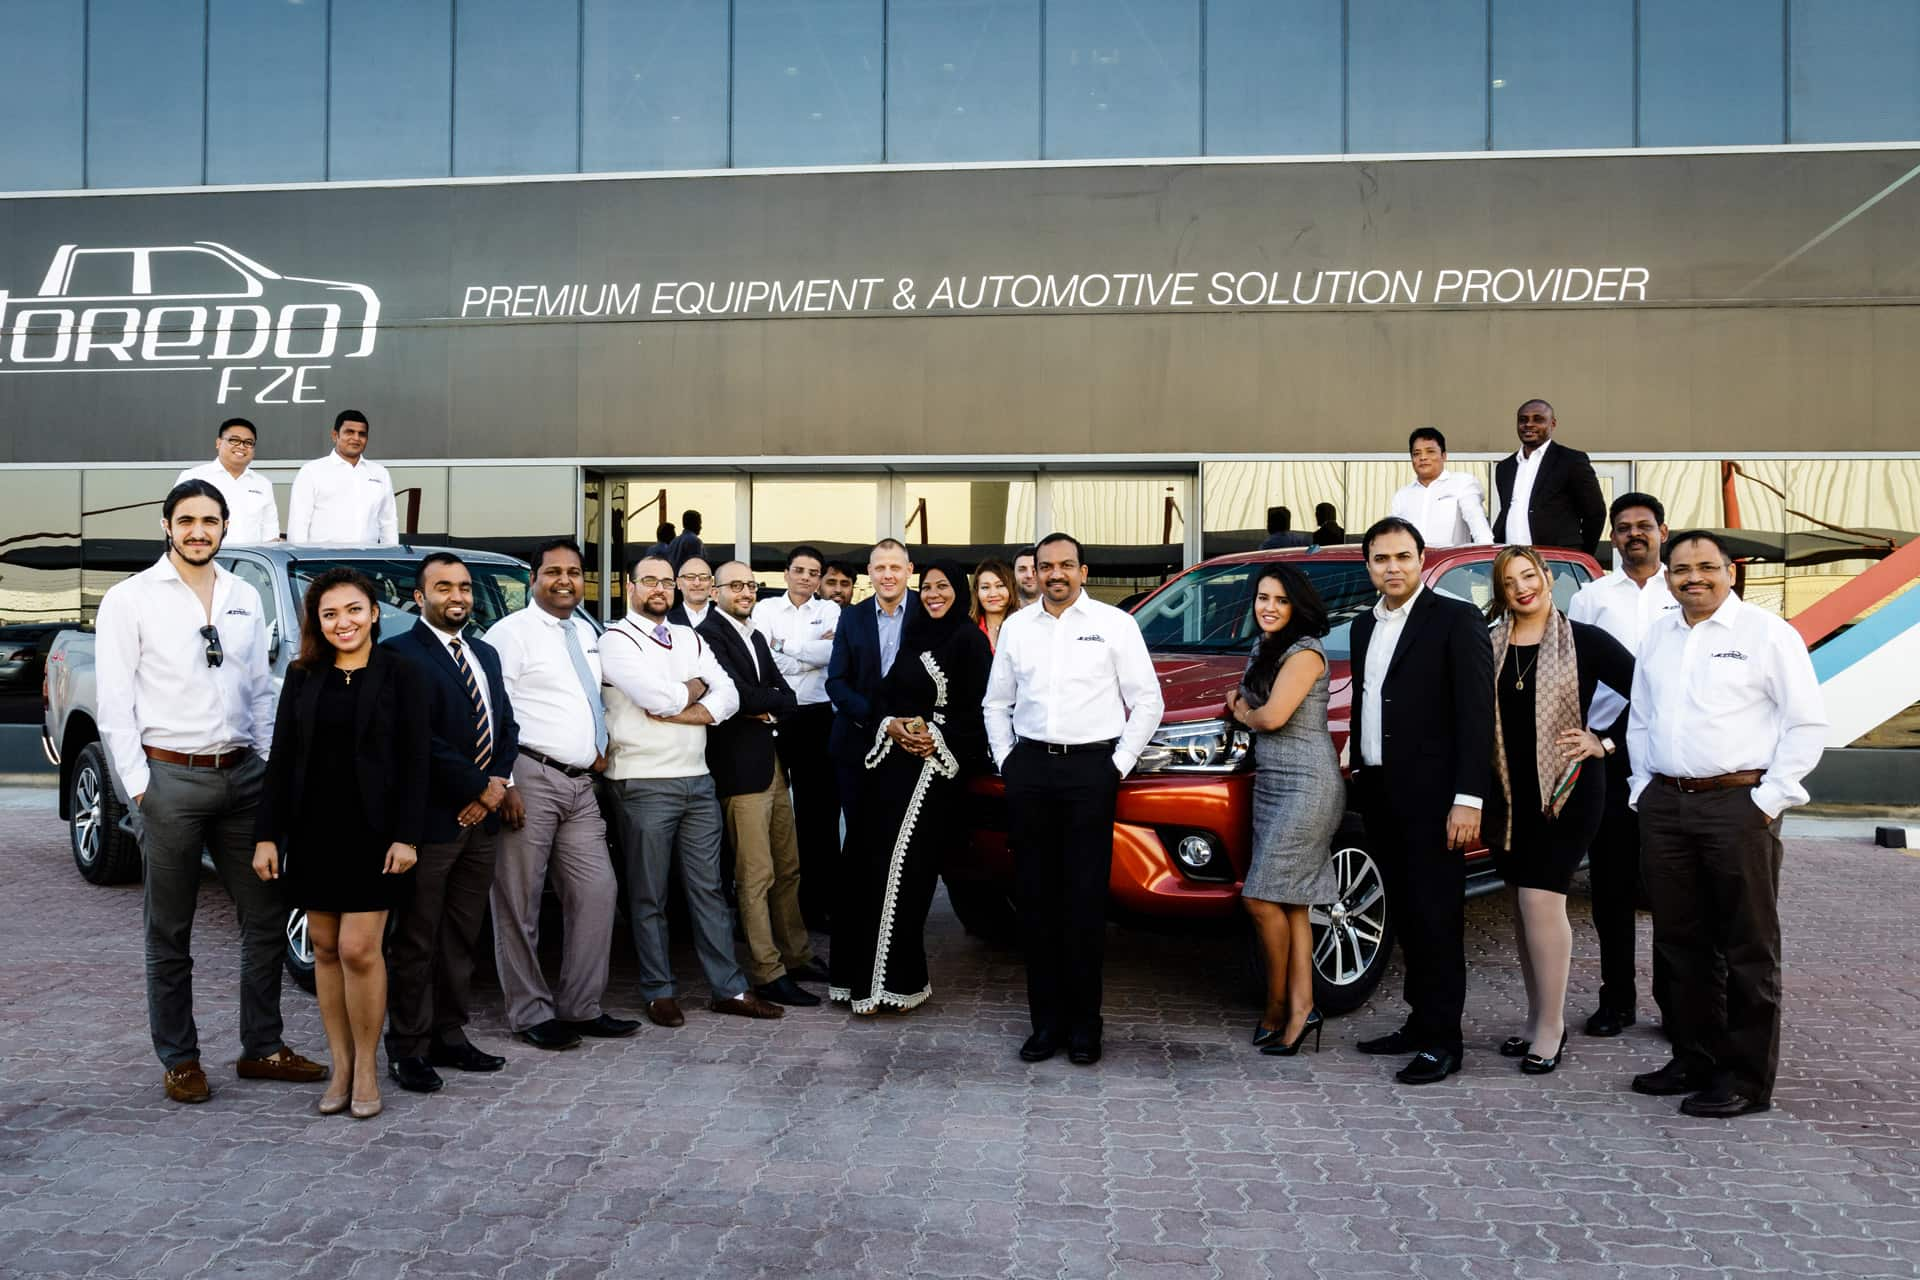 Image of Dubai Autoredo Team